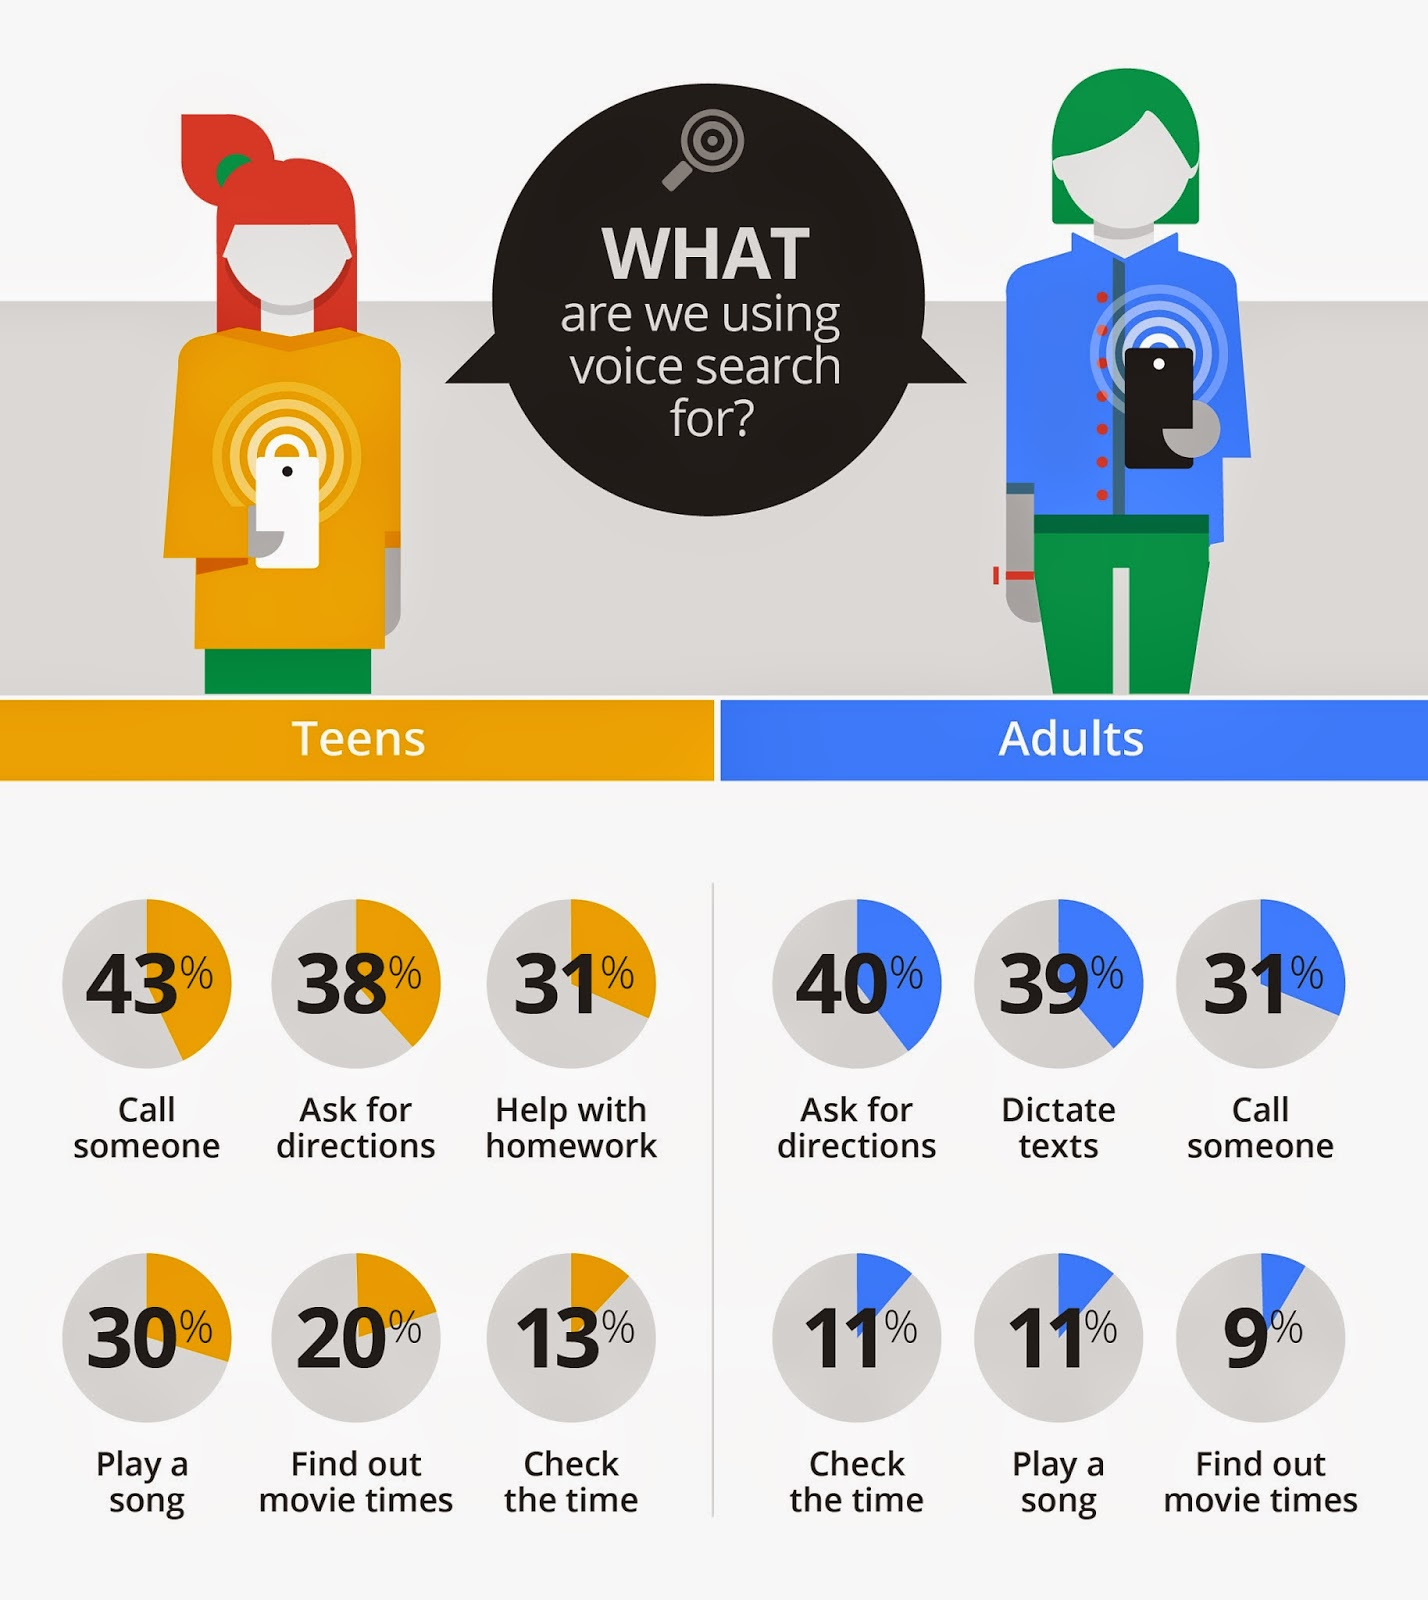 Voice Search is used mostly for local searches such as looking for directions and nearby places.